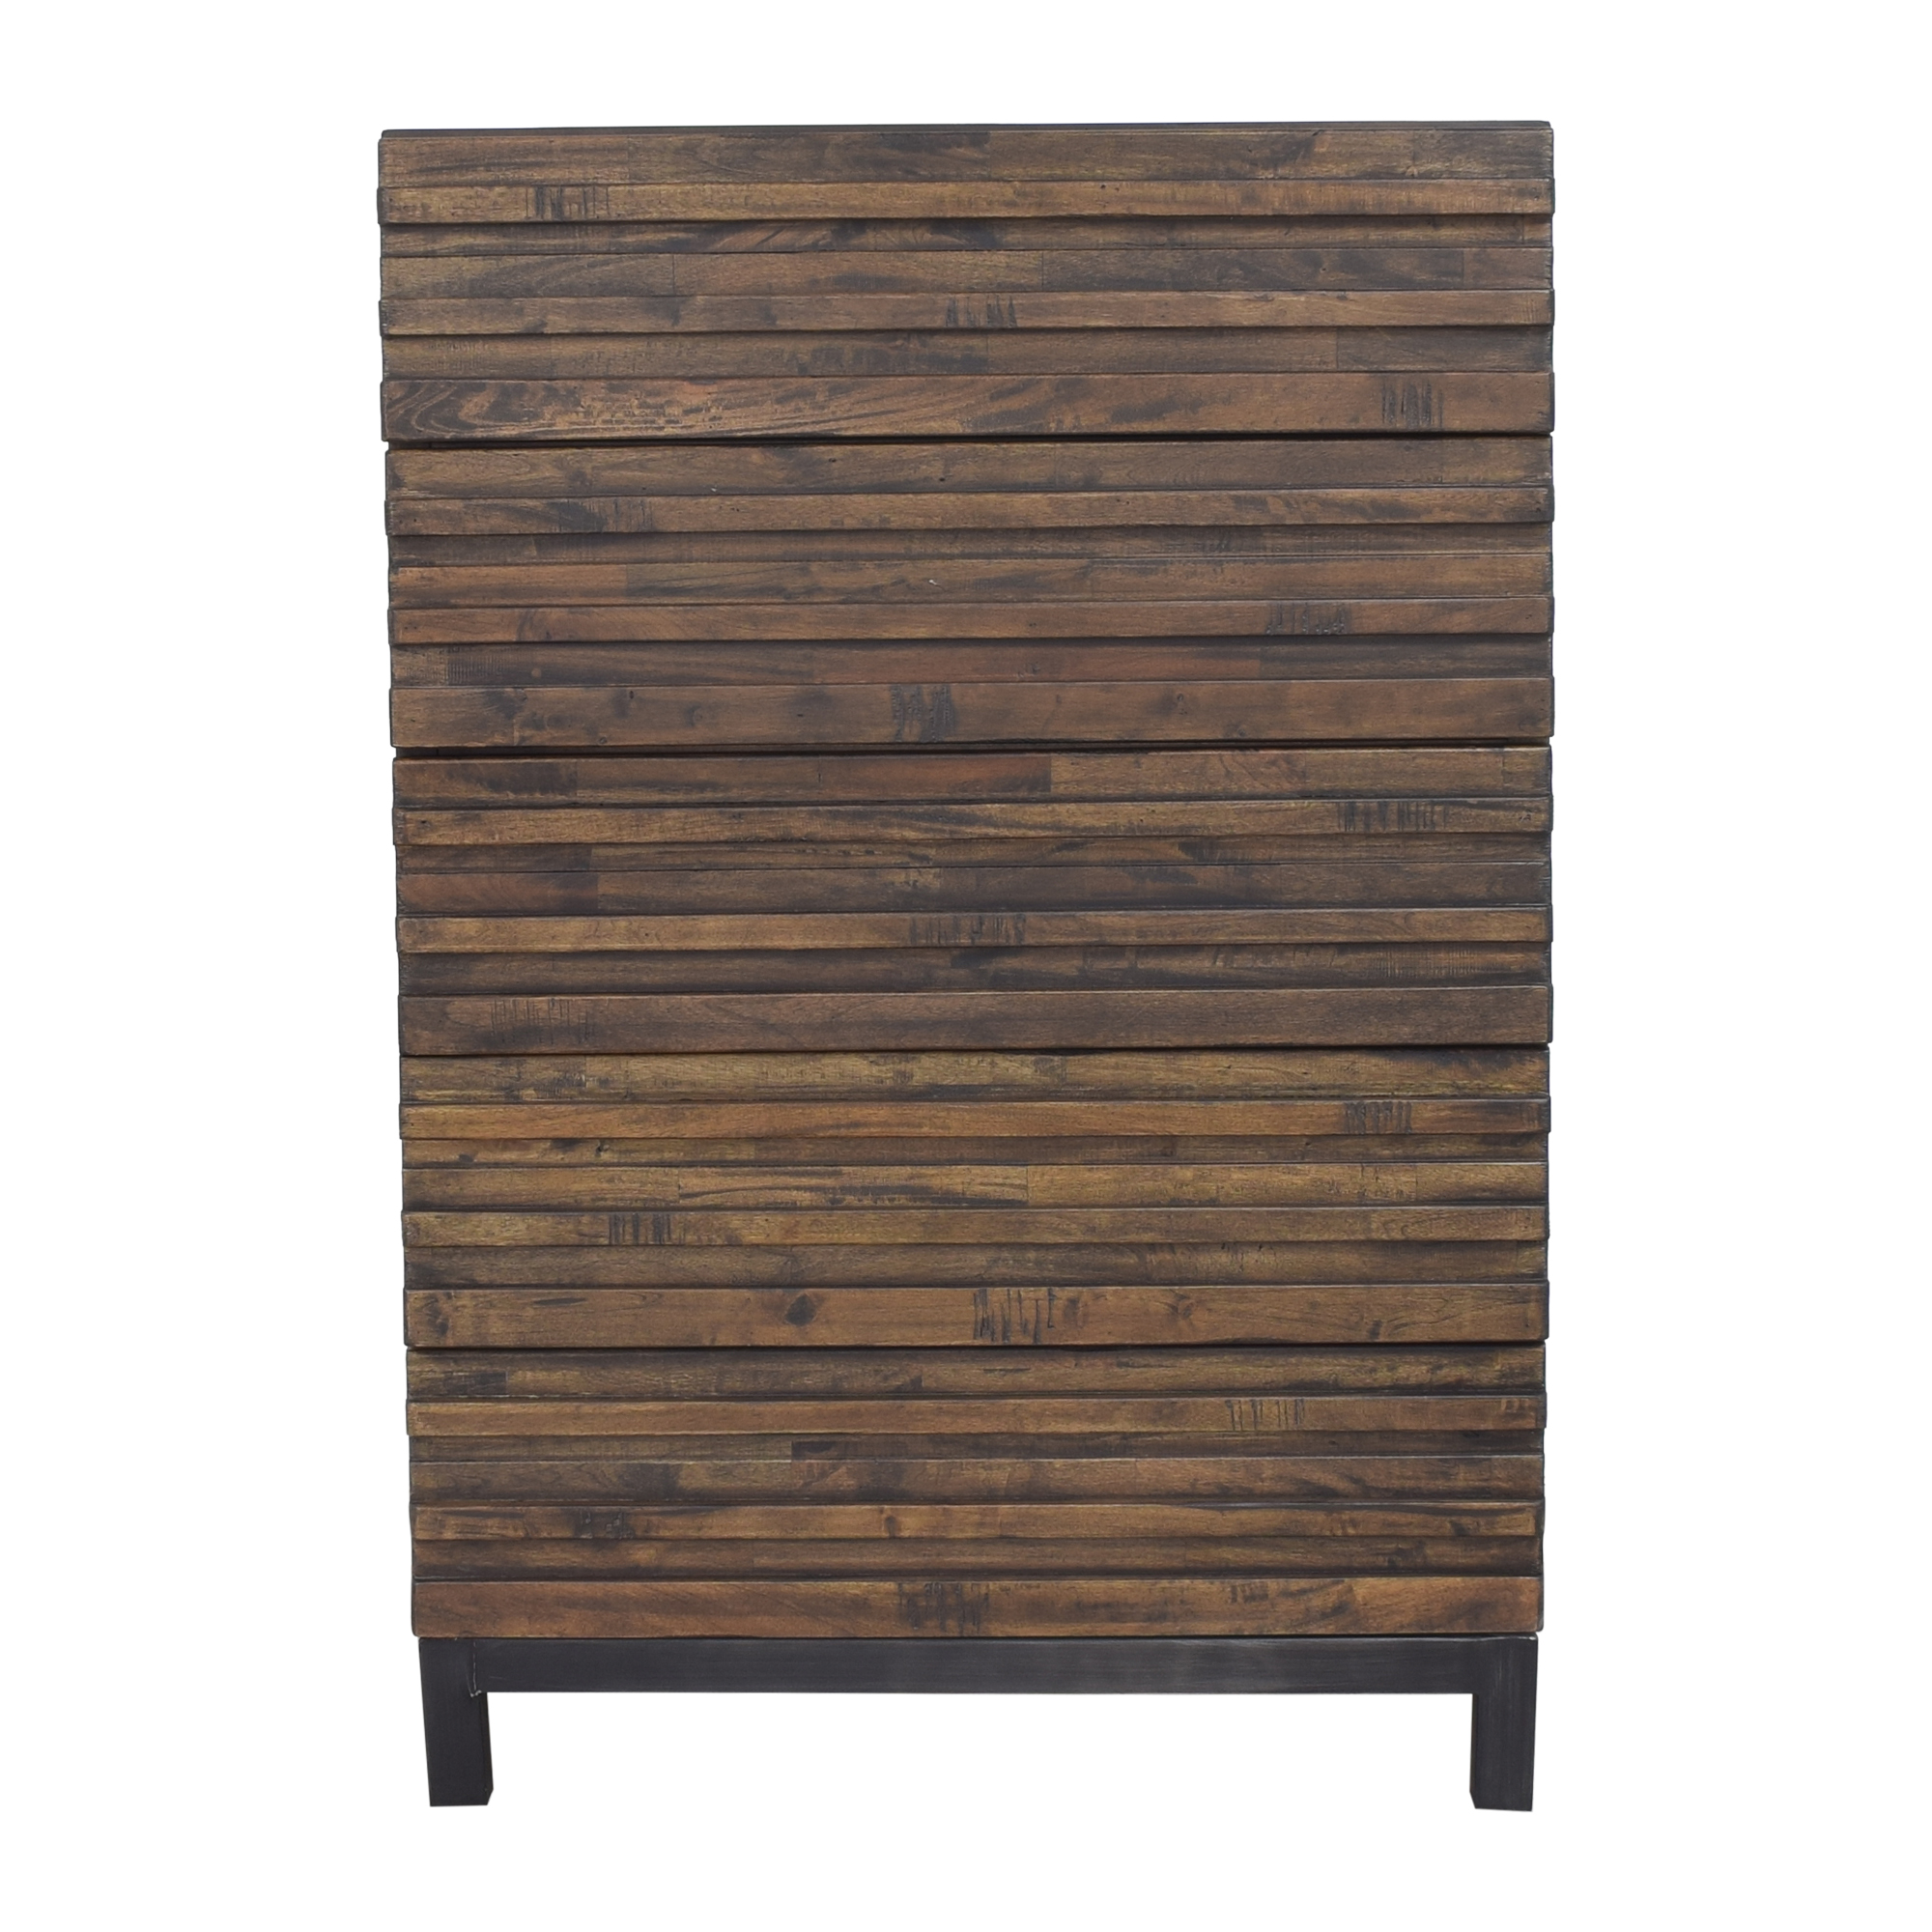 shop Raymour & Flanigan Raymour & Flanigan Five Drawer Chest online